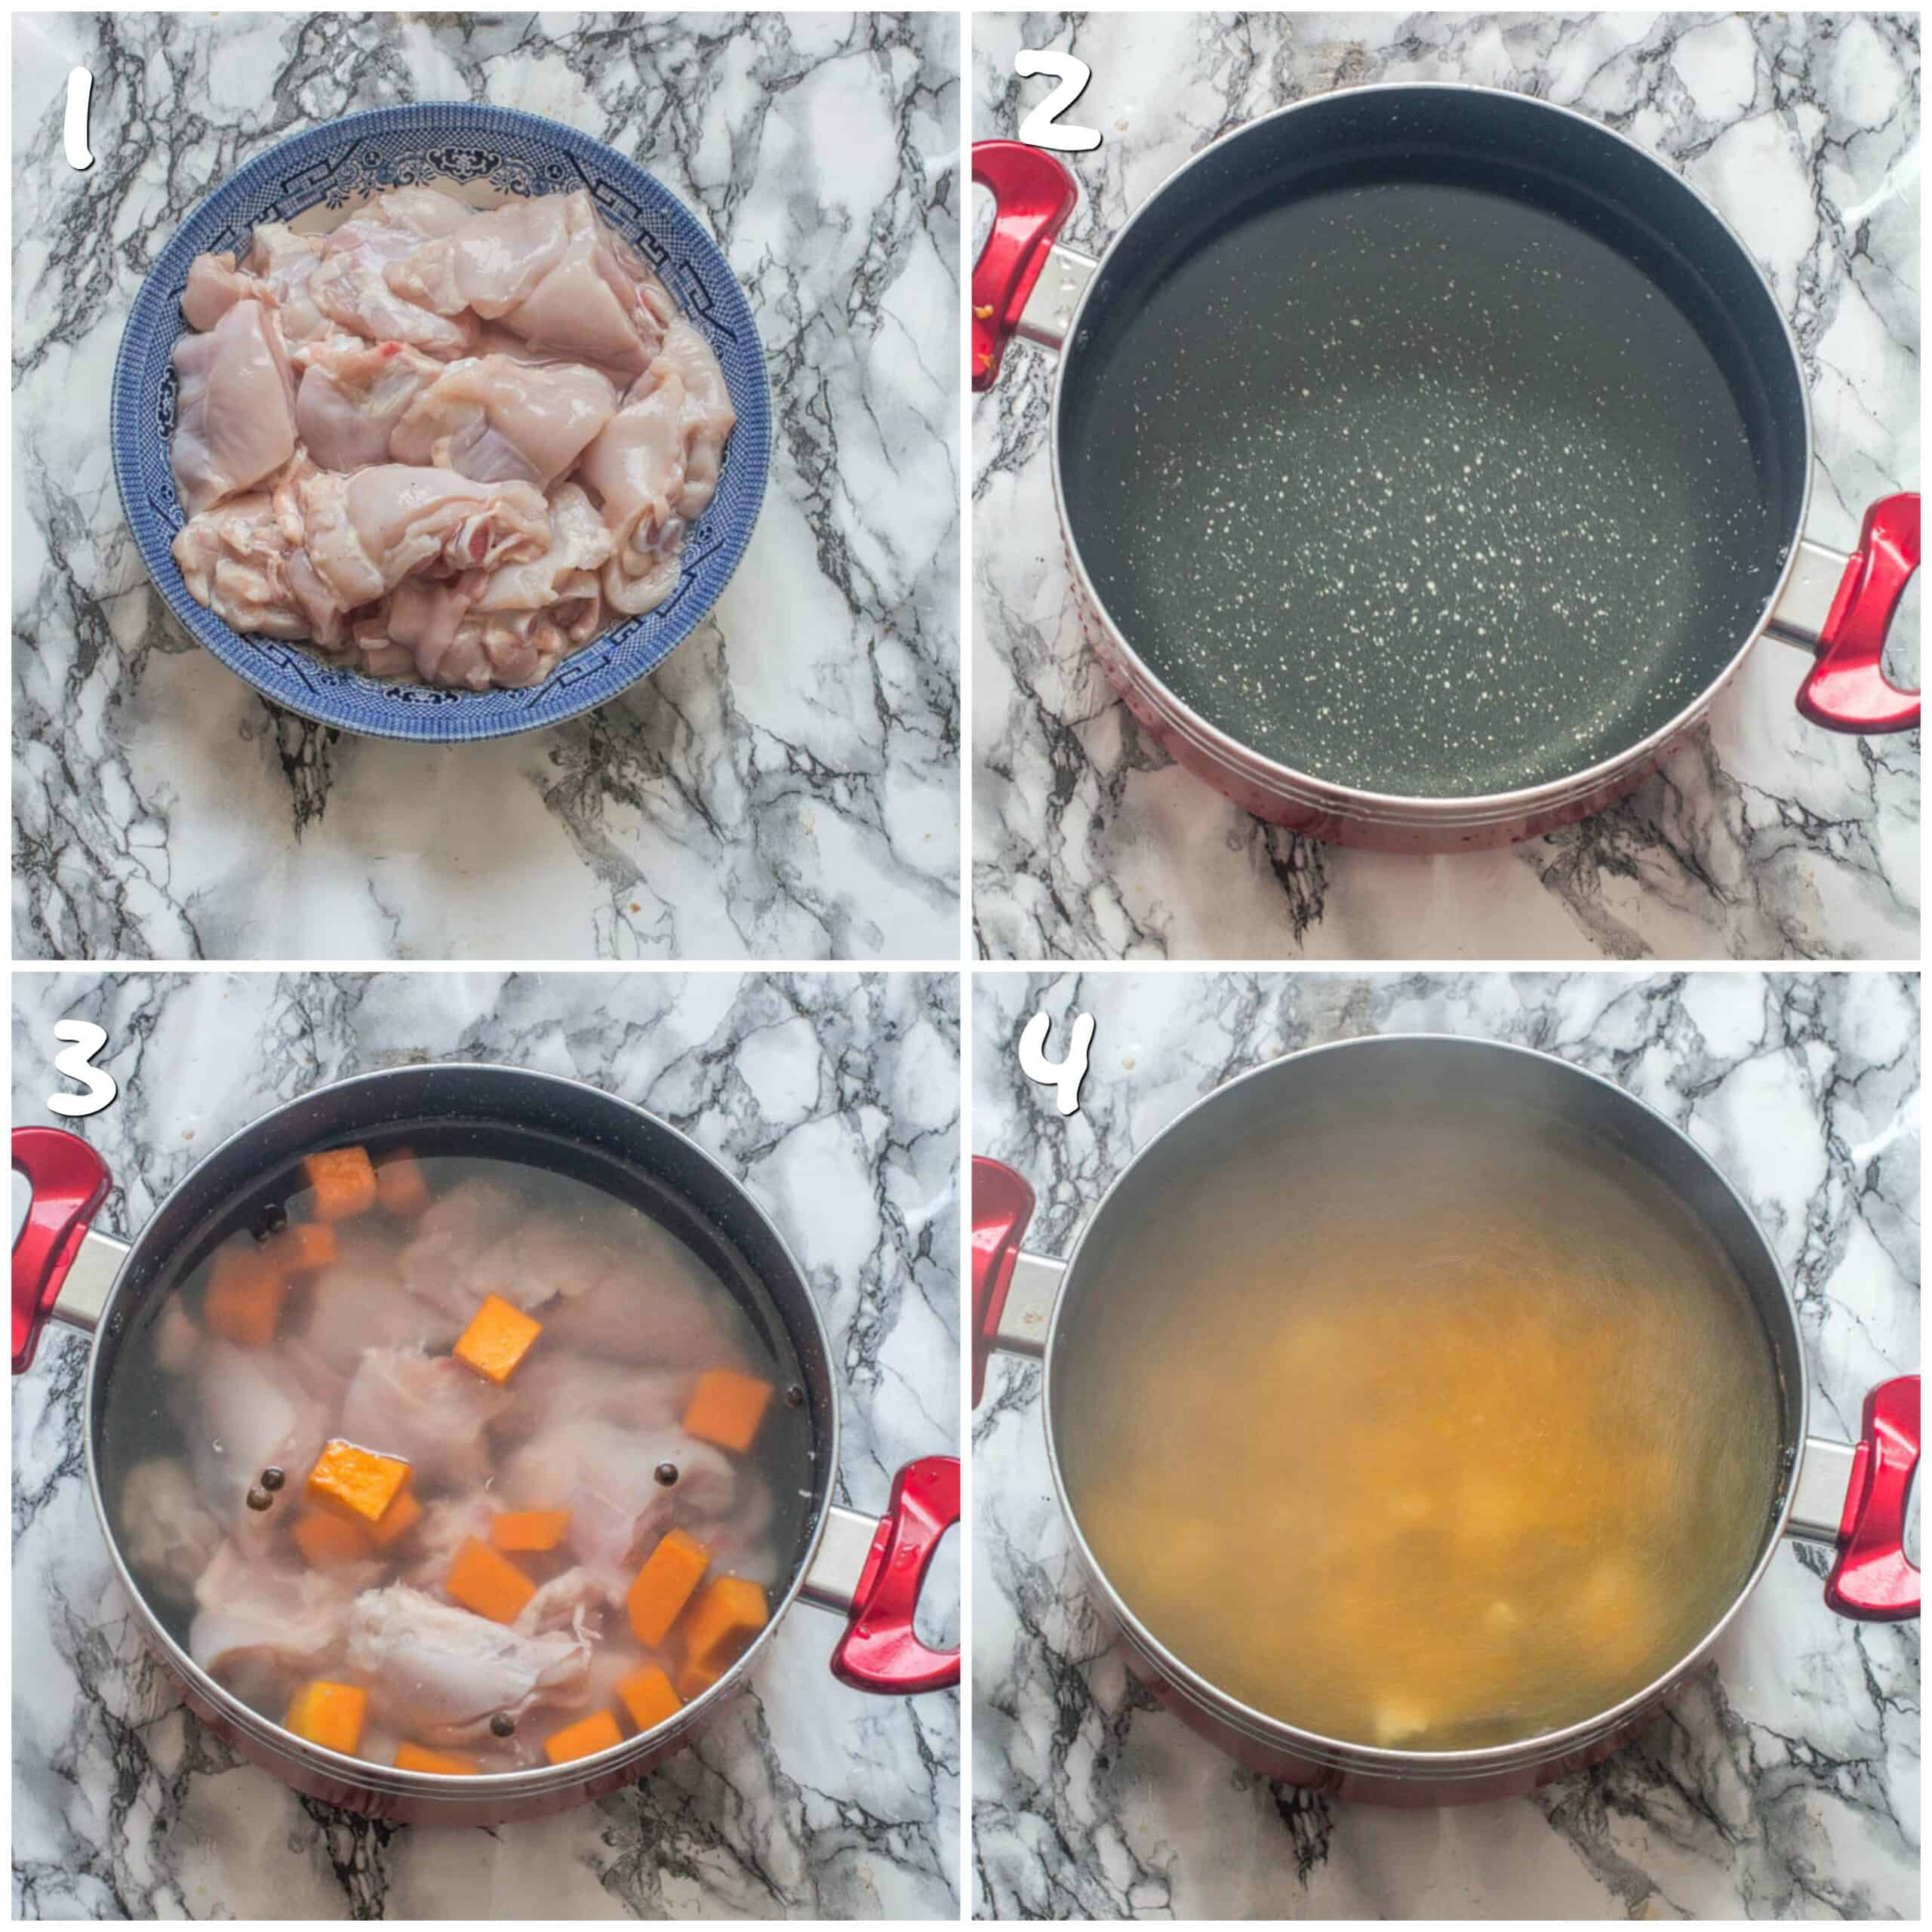 Steps 1-4 boiling water and adding ch